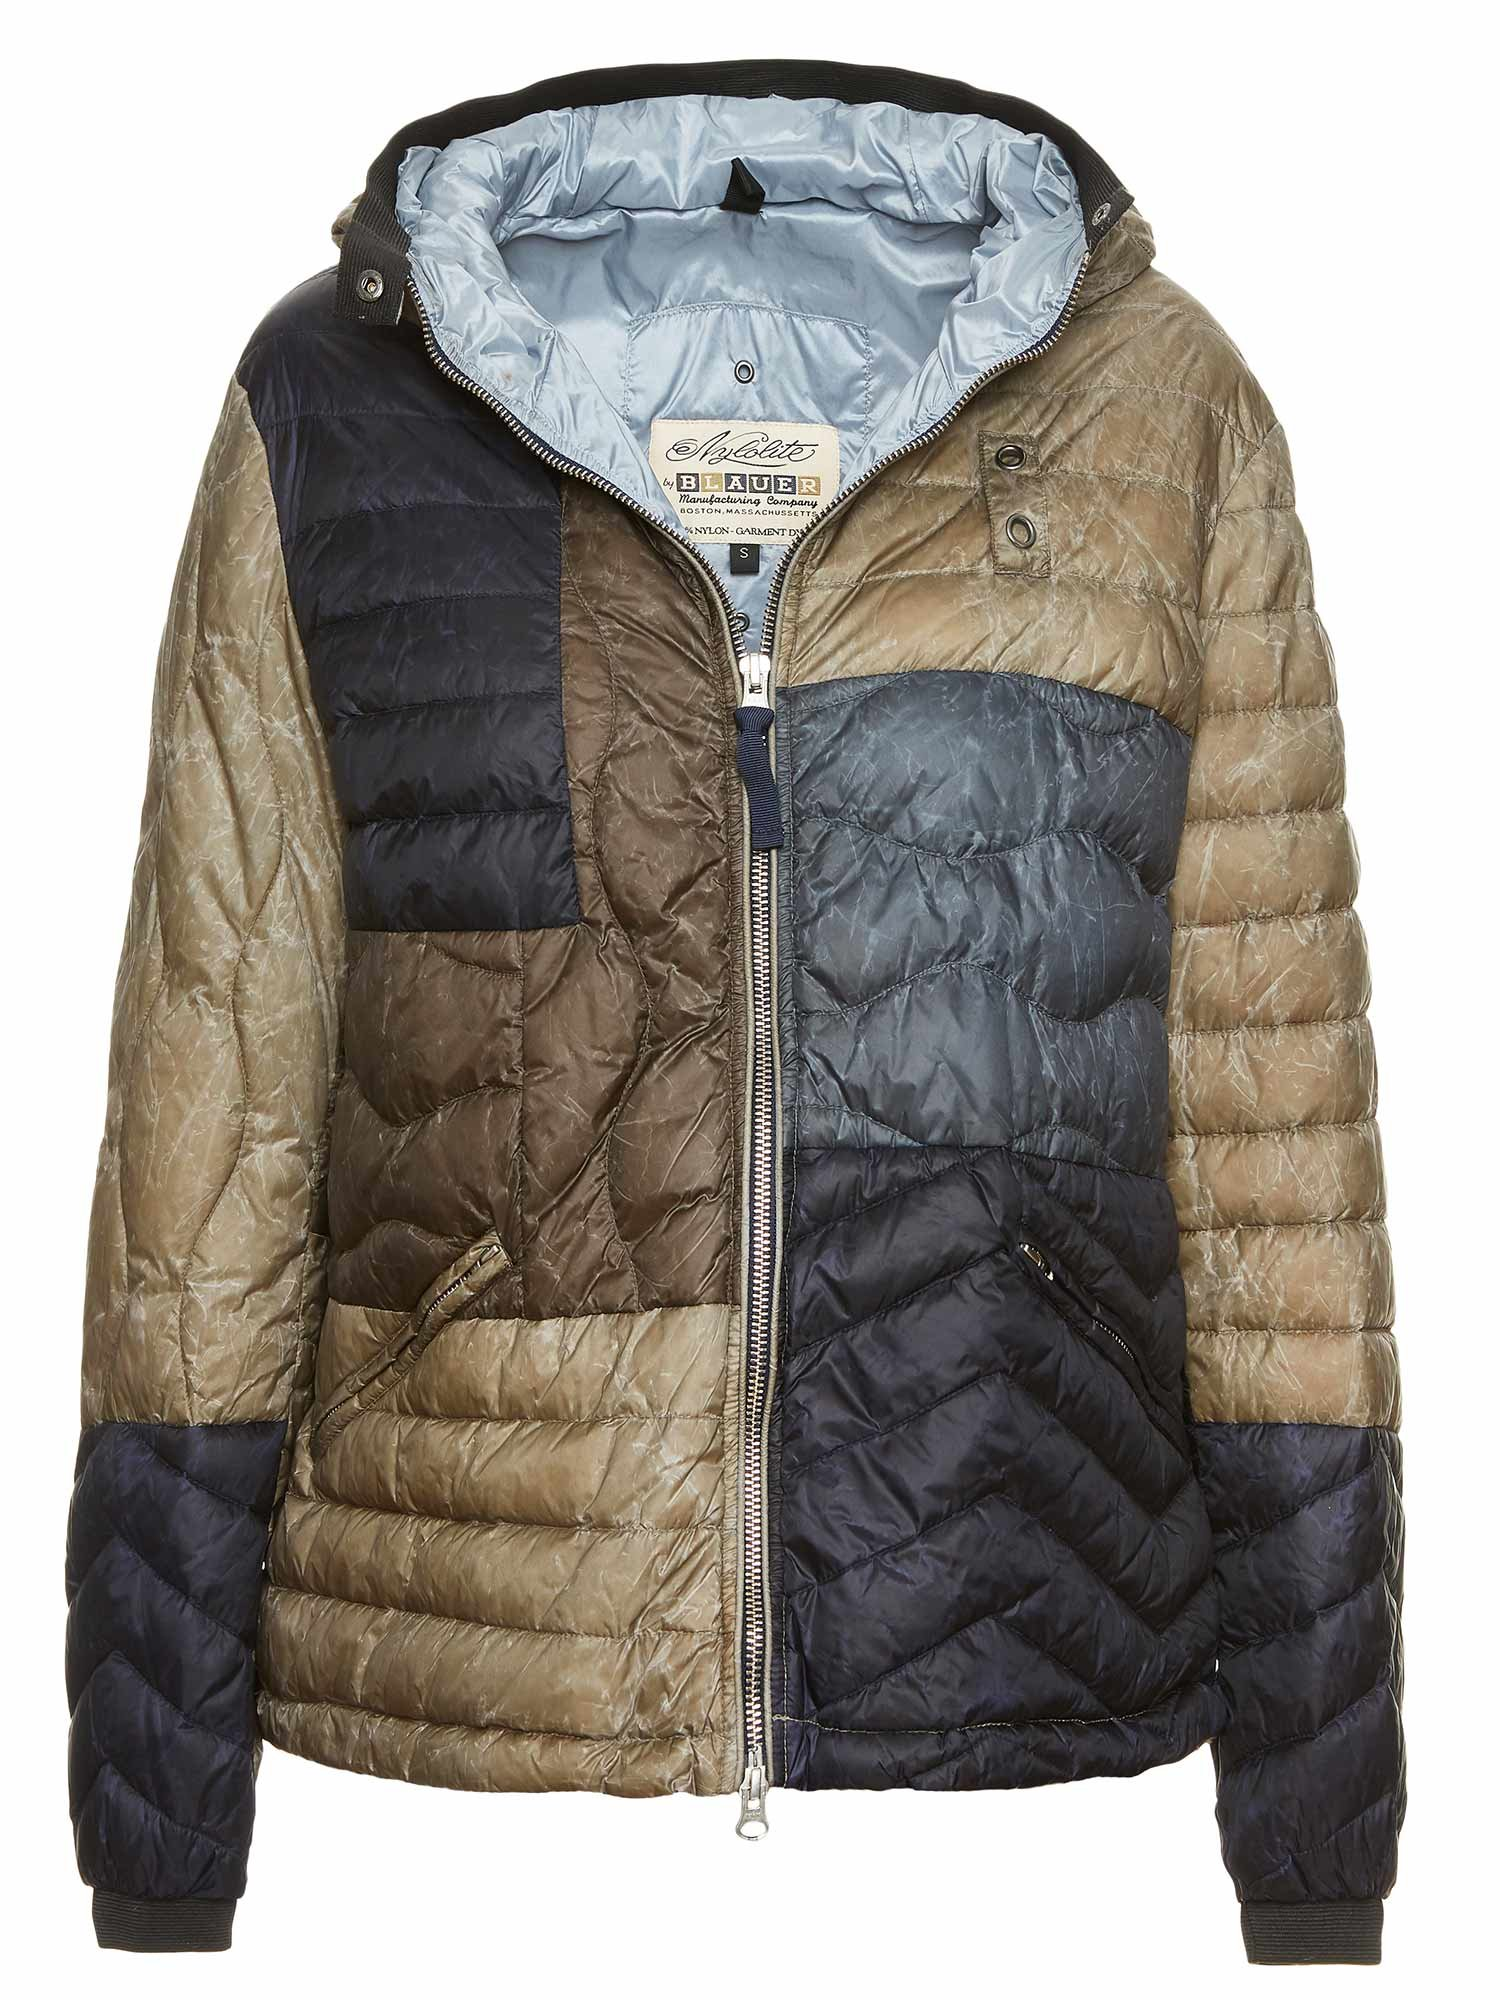 100 GR. DOWN JACKET ANNIE PATCHWORK - Blauer